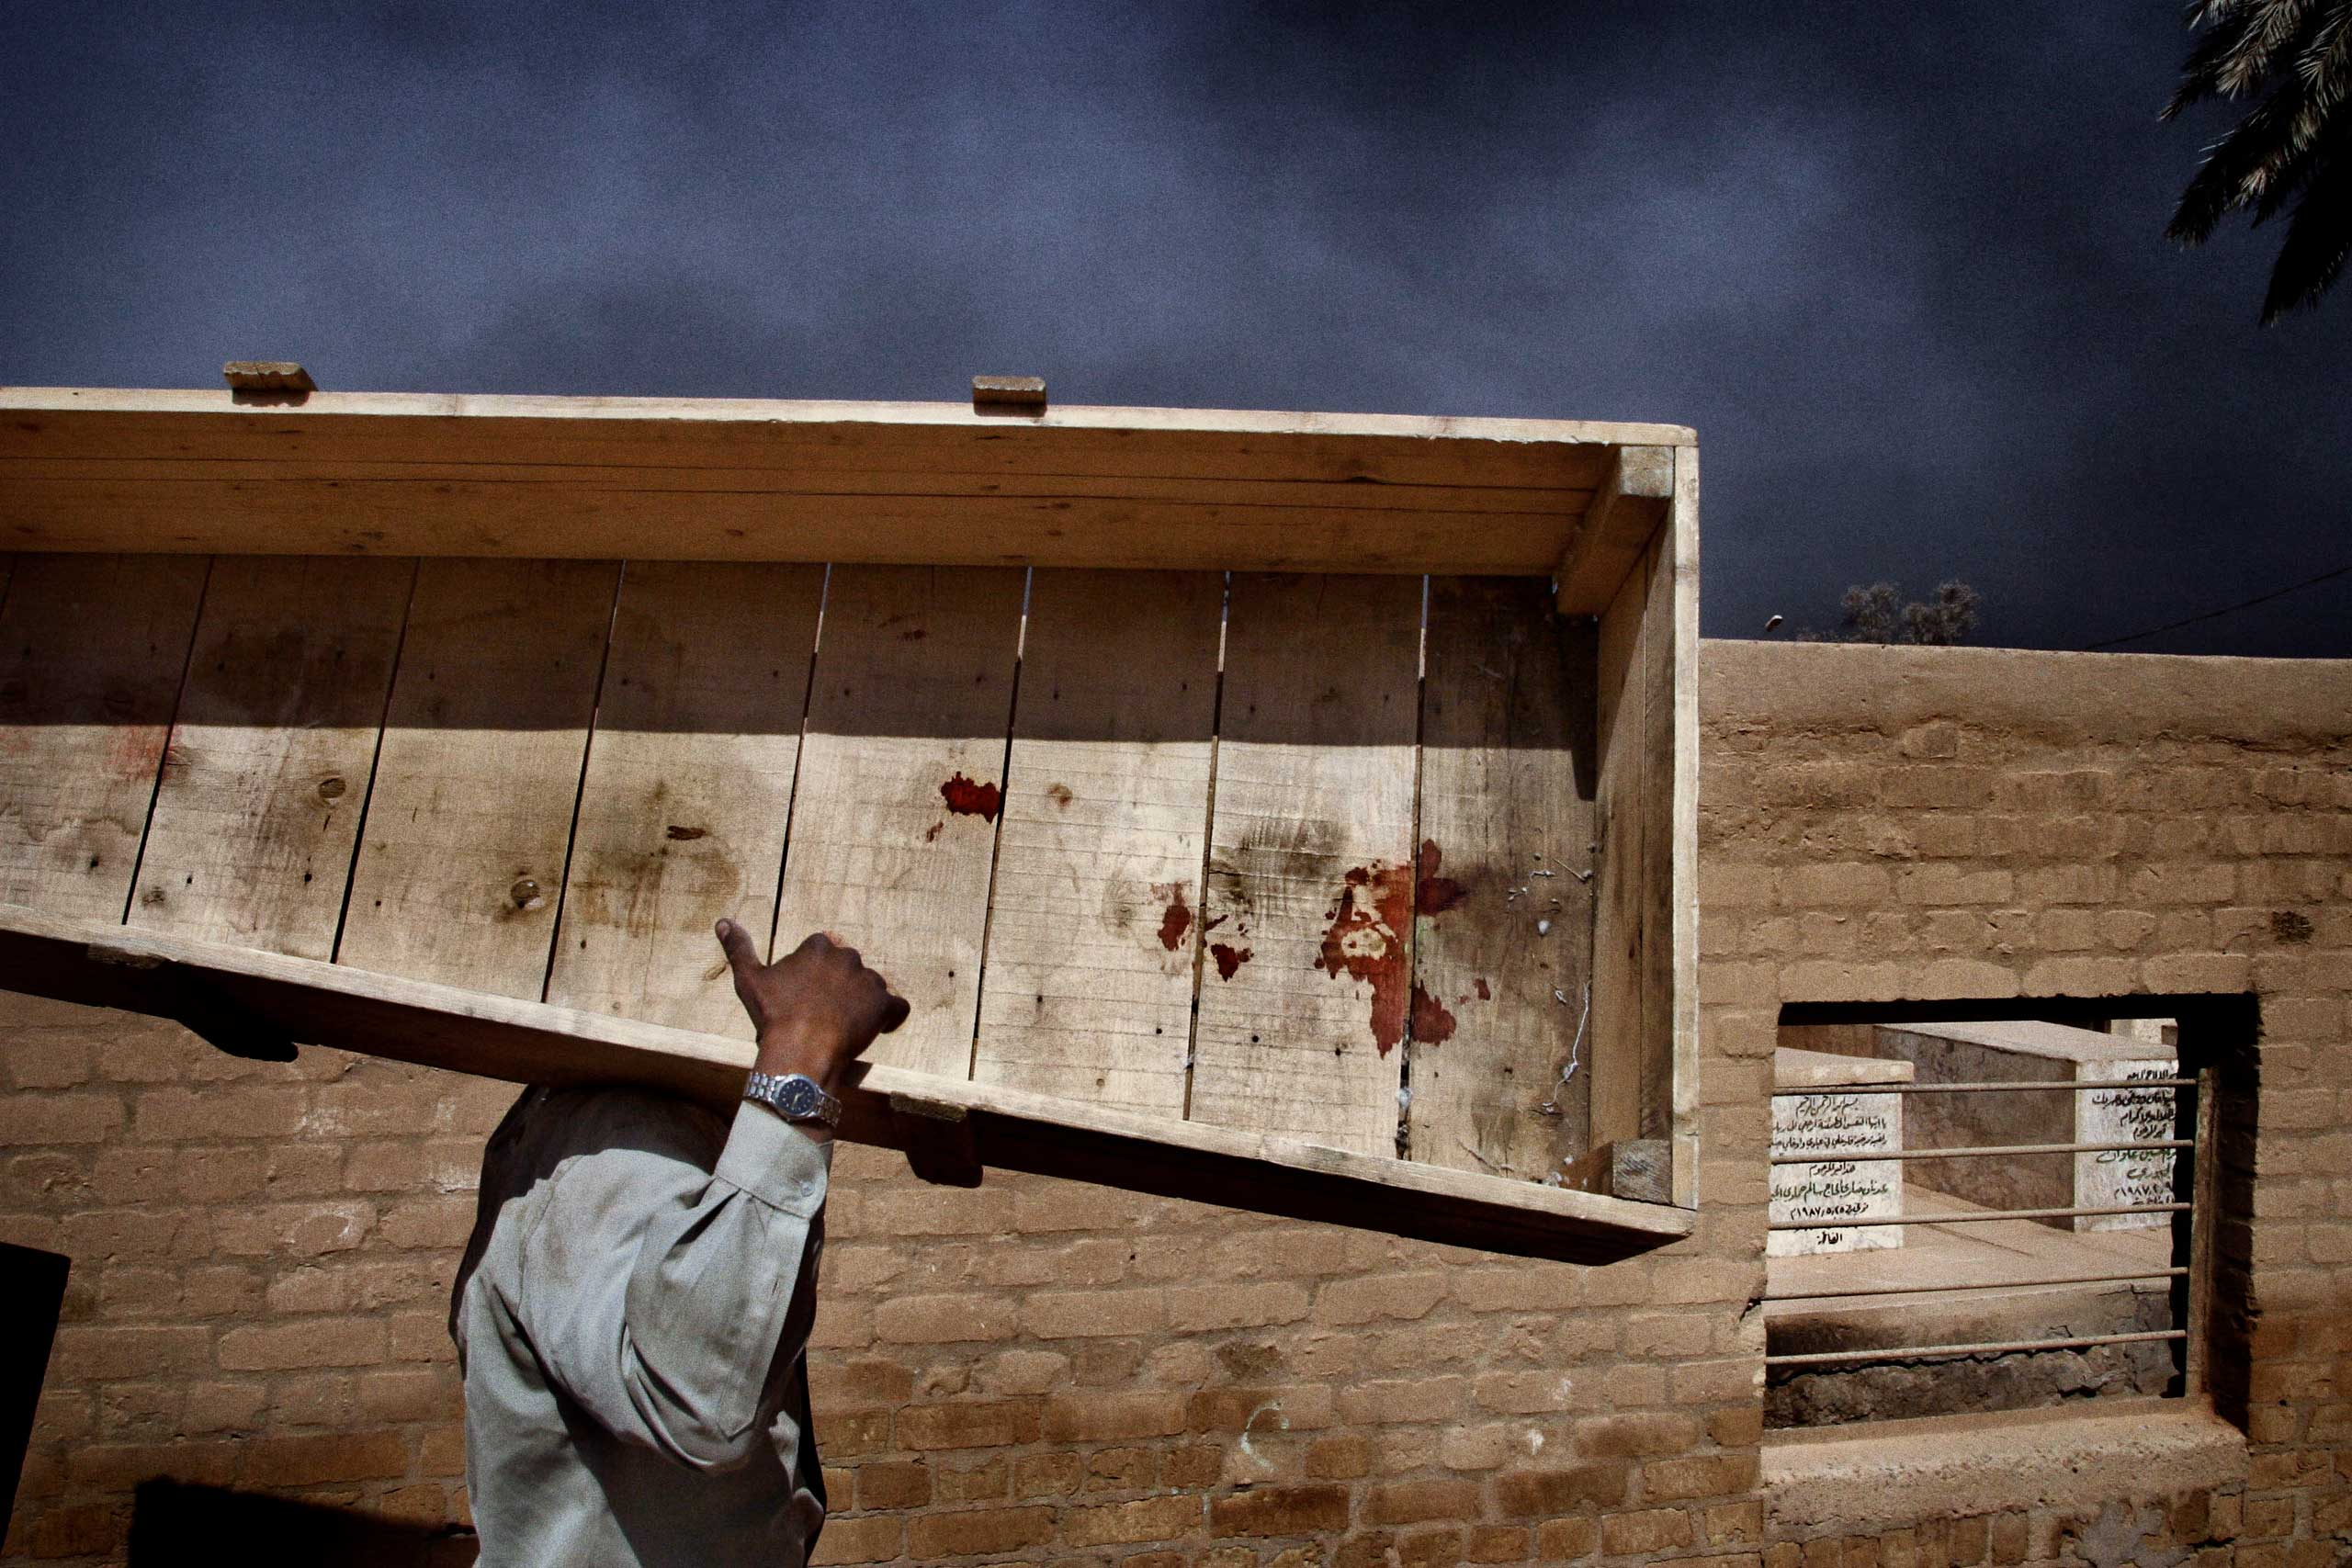 """<b>Yuri Kozyrev, March 31, 2003                                   </b>                                   A Sheikh Maaruf cemetery worker carries a reusable casket to the storage house after the funeral of Nidal Ali Jasem, a lonely deaf and dumb woman killed in a rocket blast in the south of Baghdad.                                    I was in Baghdad with a hundred journalists during """"Shock and Awe."""" When the operation began on March 21st, the prospect of dropping thousands bombs and missiles was frightening for everyone on the ground. On the first night, in spite of the thunderous explosions not far from the hotel the journalists were staying in, we observed that the weapons were destroying the targets with accuracy. After a week of bombings, it was amazing to witness the Iraqis' remarkable resilience. Most people continued with their daily lives as bombs continued to fall around them. And of course there were airstrikes where many Iraqi civilians were killed. We were being watched by minders all the time, who gave us access to the events they thought were news: civilians affected by the bombing or a press conference at the Ministry of Information. We were not allowed to go anywhere near the military or the Republican Guard. They wanted us to report their side of the story - we couldn't just get into the taxi and travel around.                                   It was late afternoon when my colleague, Sergey Loiko of the Los Angeles Times, our minder and I entered one of the oldest cemeteries in Baghdad. We didn't expect to see people there but there were some families who had brought the bodies of their relatives killed by airstrikes. A worker told us he had been busy all day long."""